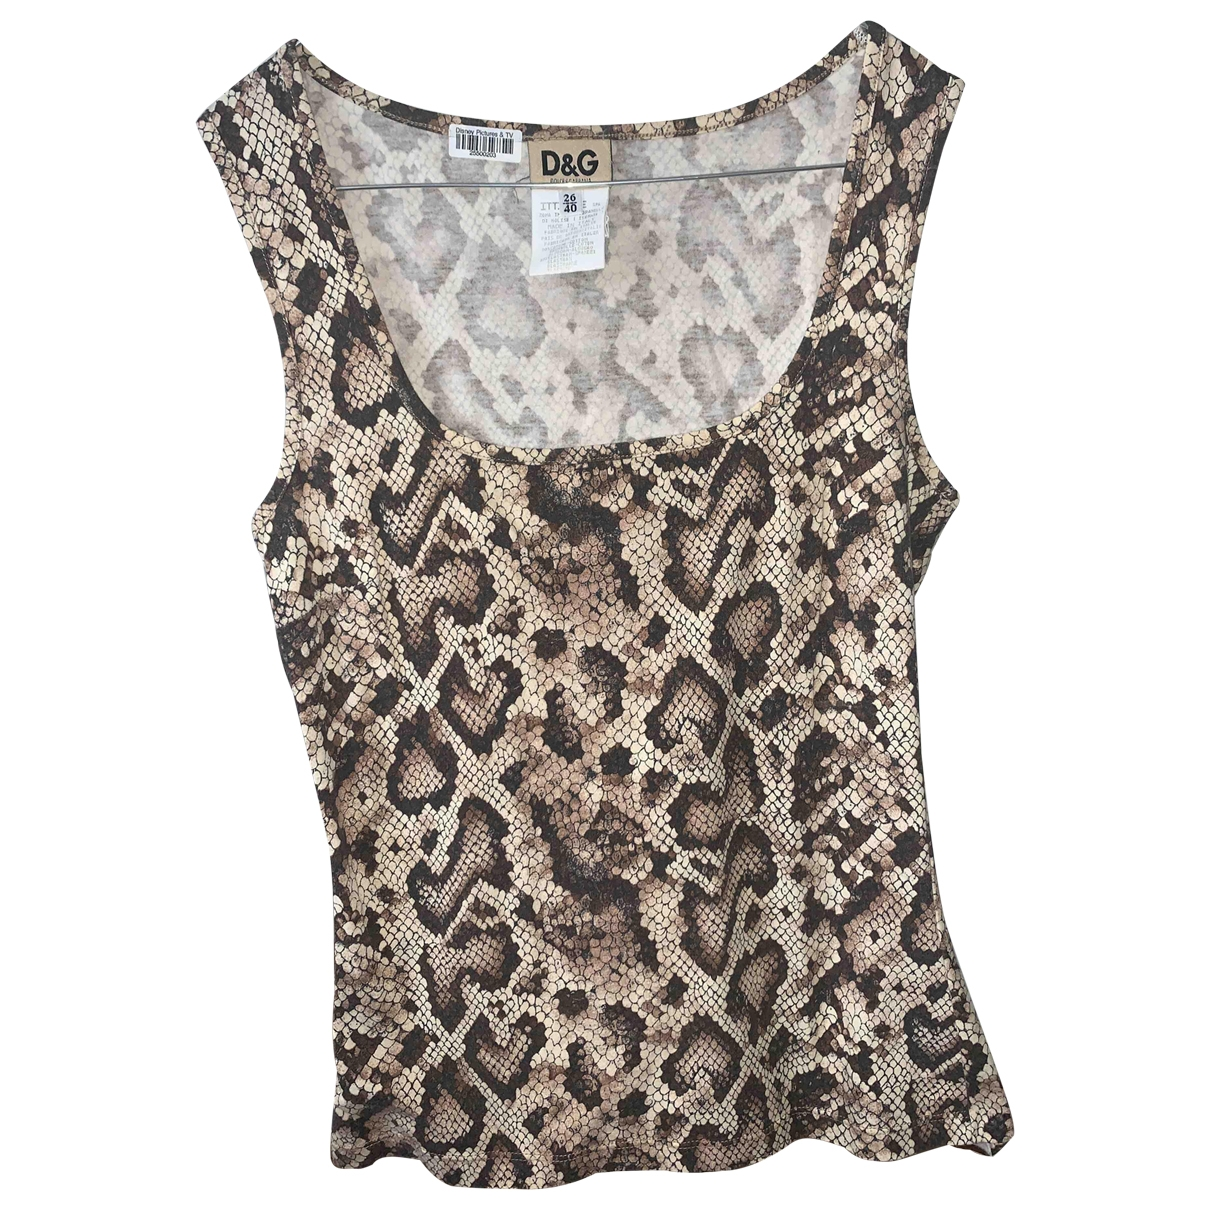 D&g \N Top in  Beige Baumwolle